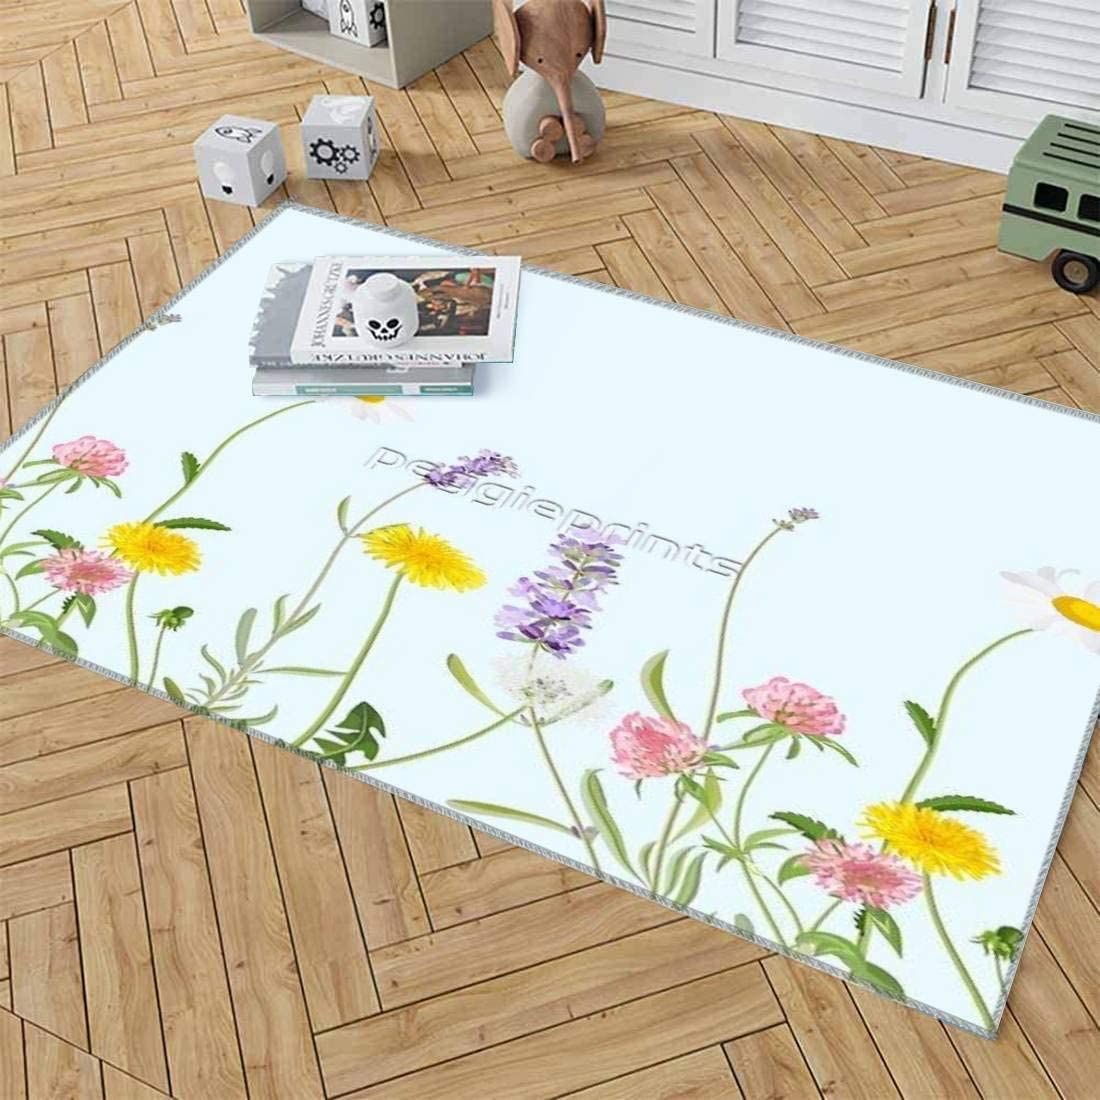 Timbersco Area Rugs Pastel Cyan Wildflower C Baby Rug for Denver Ranking TOP11 Mall Dreams